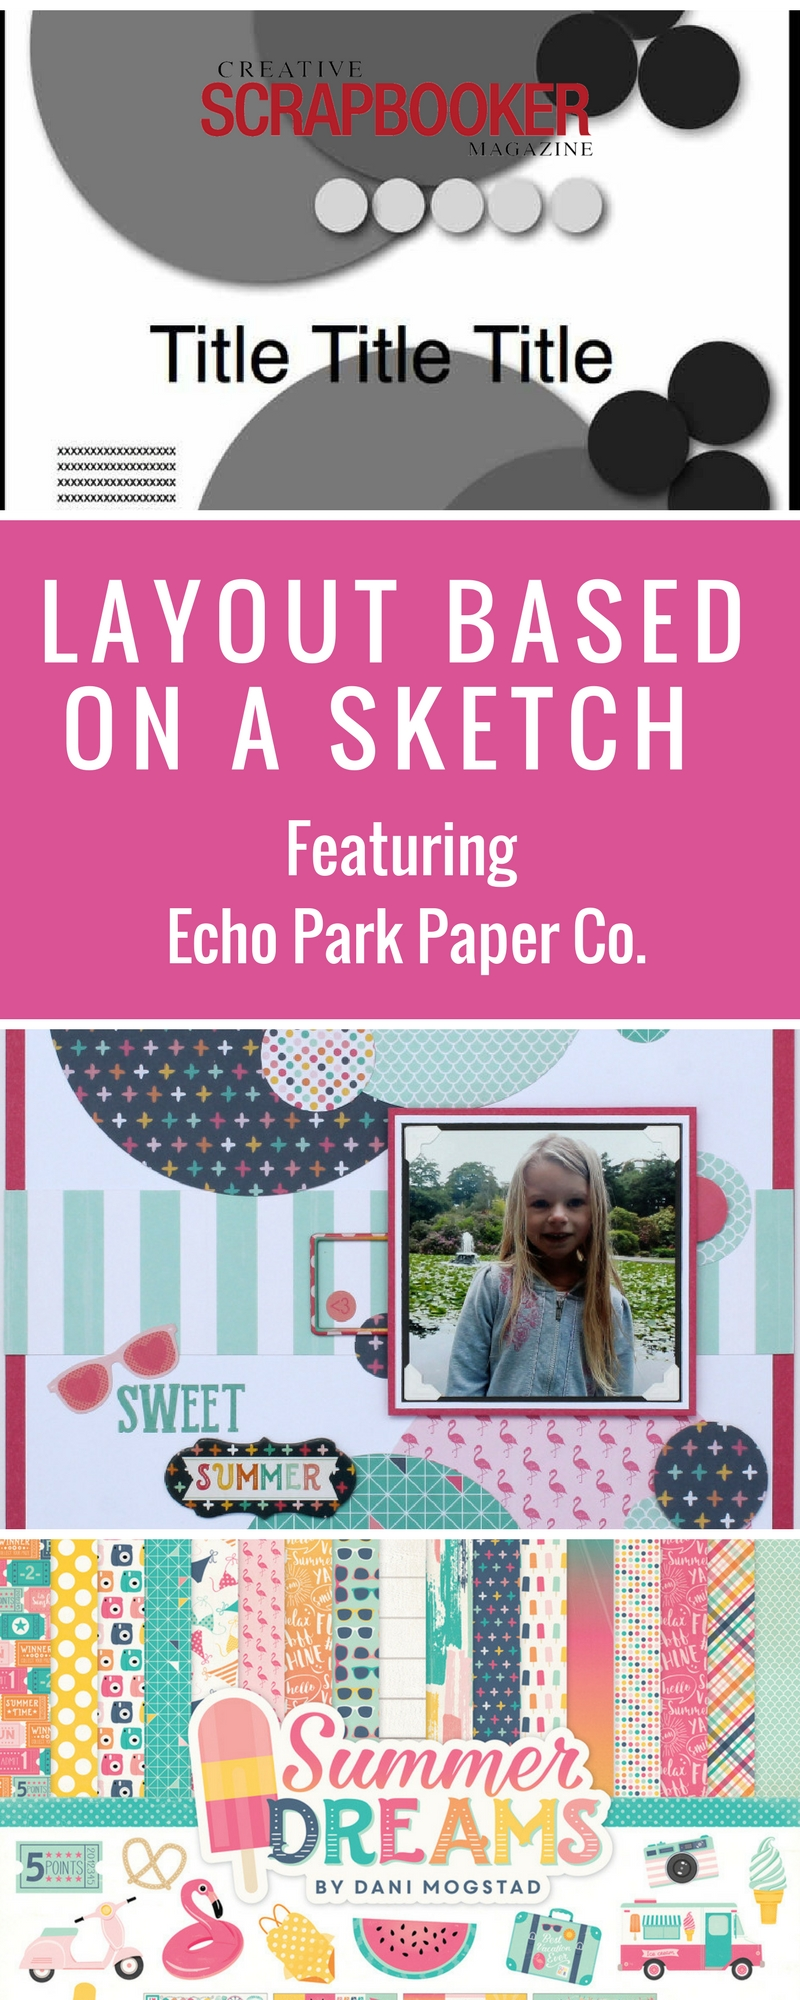 Scrapbooking | Layout Based on a Sketch | Featuring Echo Park Paper Co. | Creative Scrapbooker Magazine